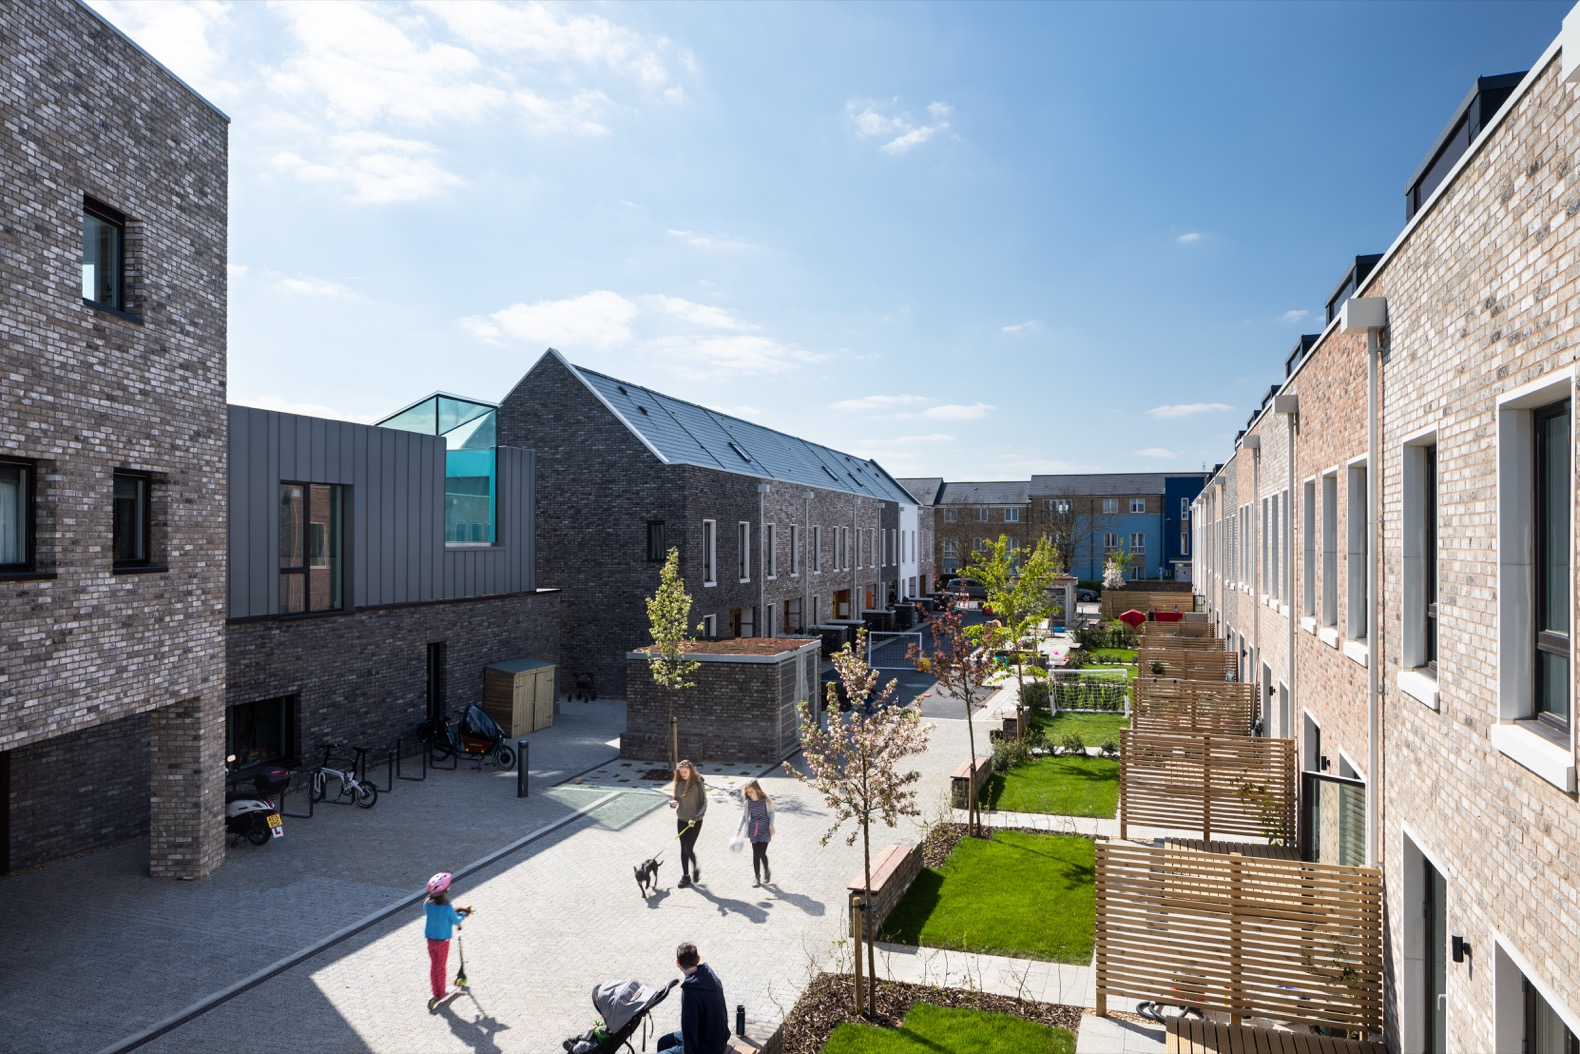 Cambridge's first co-housing development fosters sustainable living